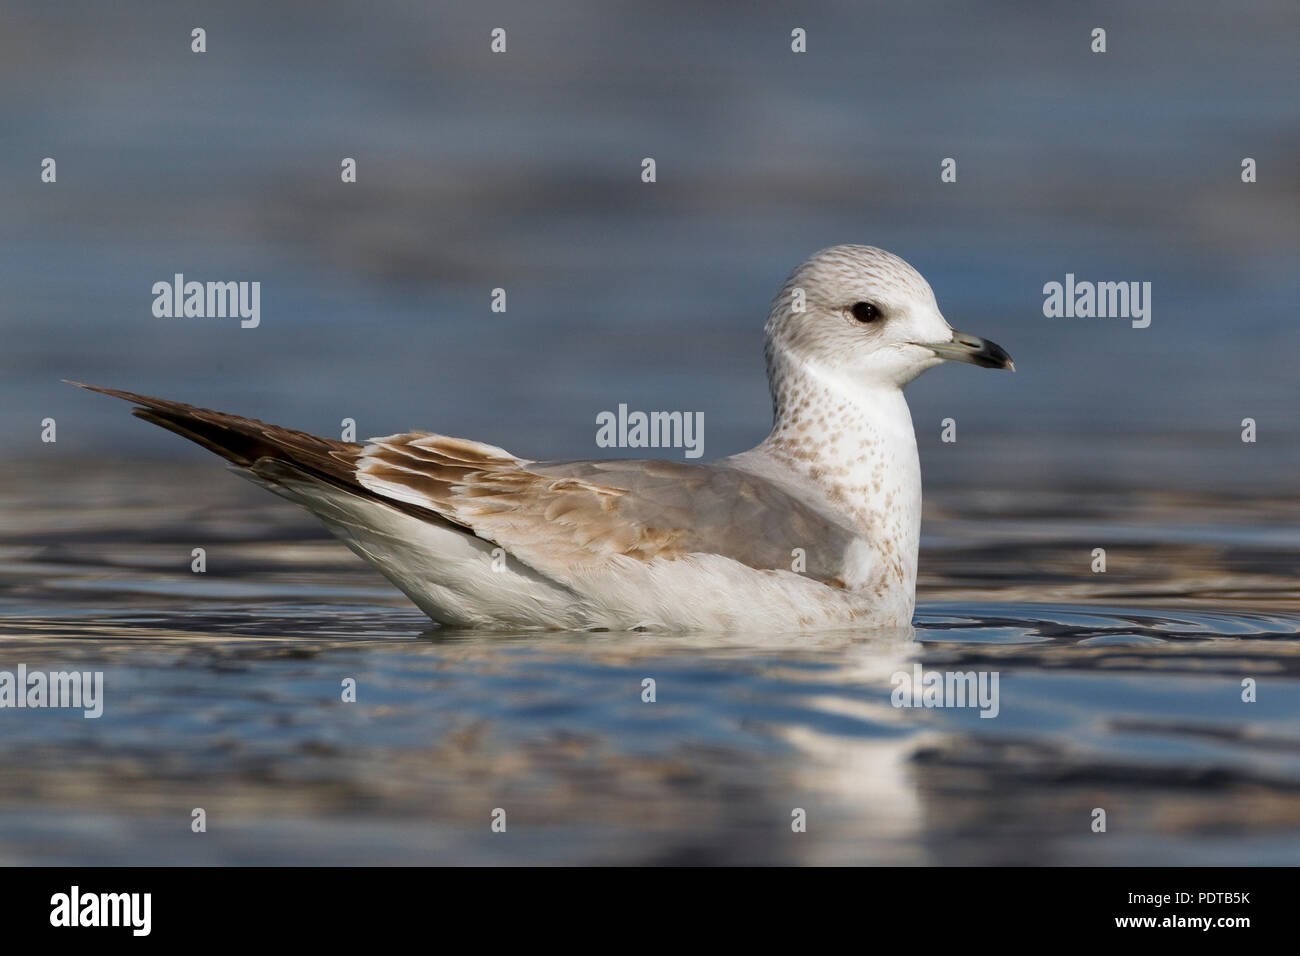 First winter plumage Common Gull swimming. - Stock Image